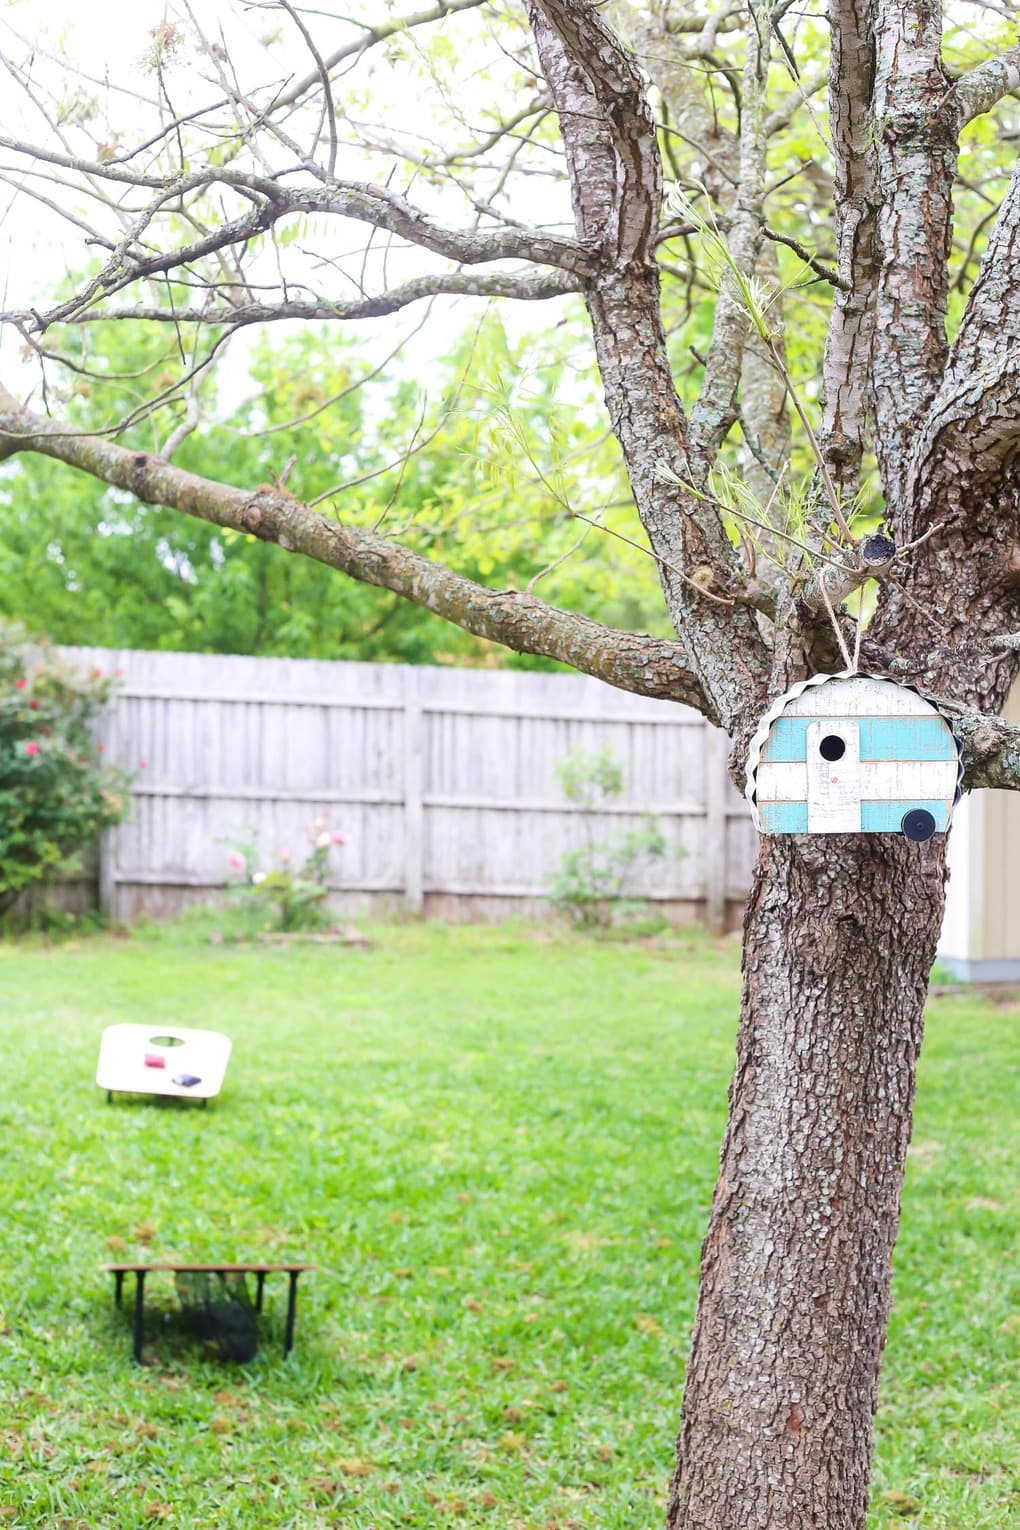 Tree with camper-shaped bird house and backyard games in the background